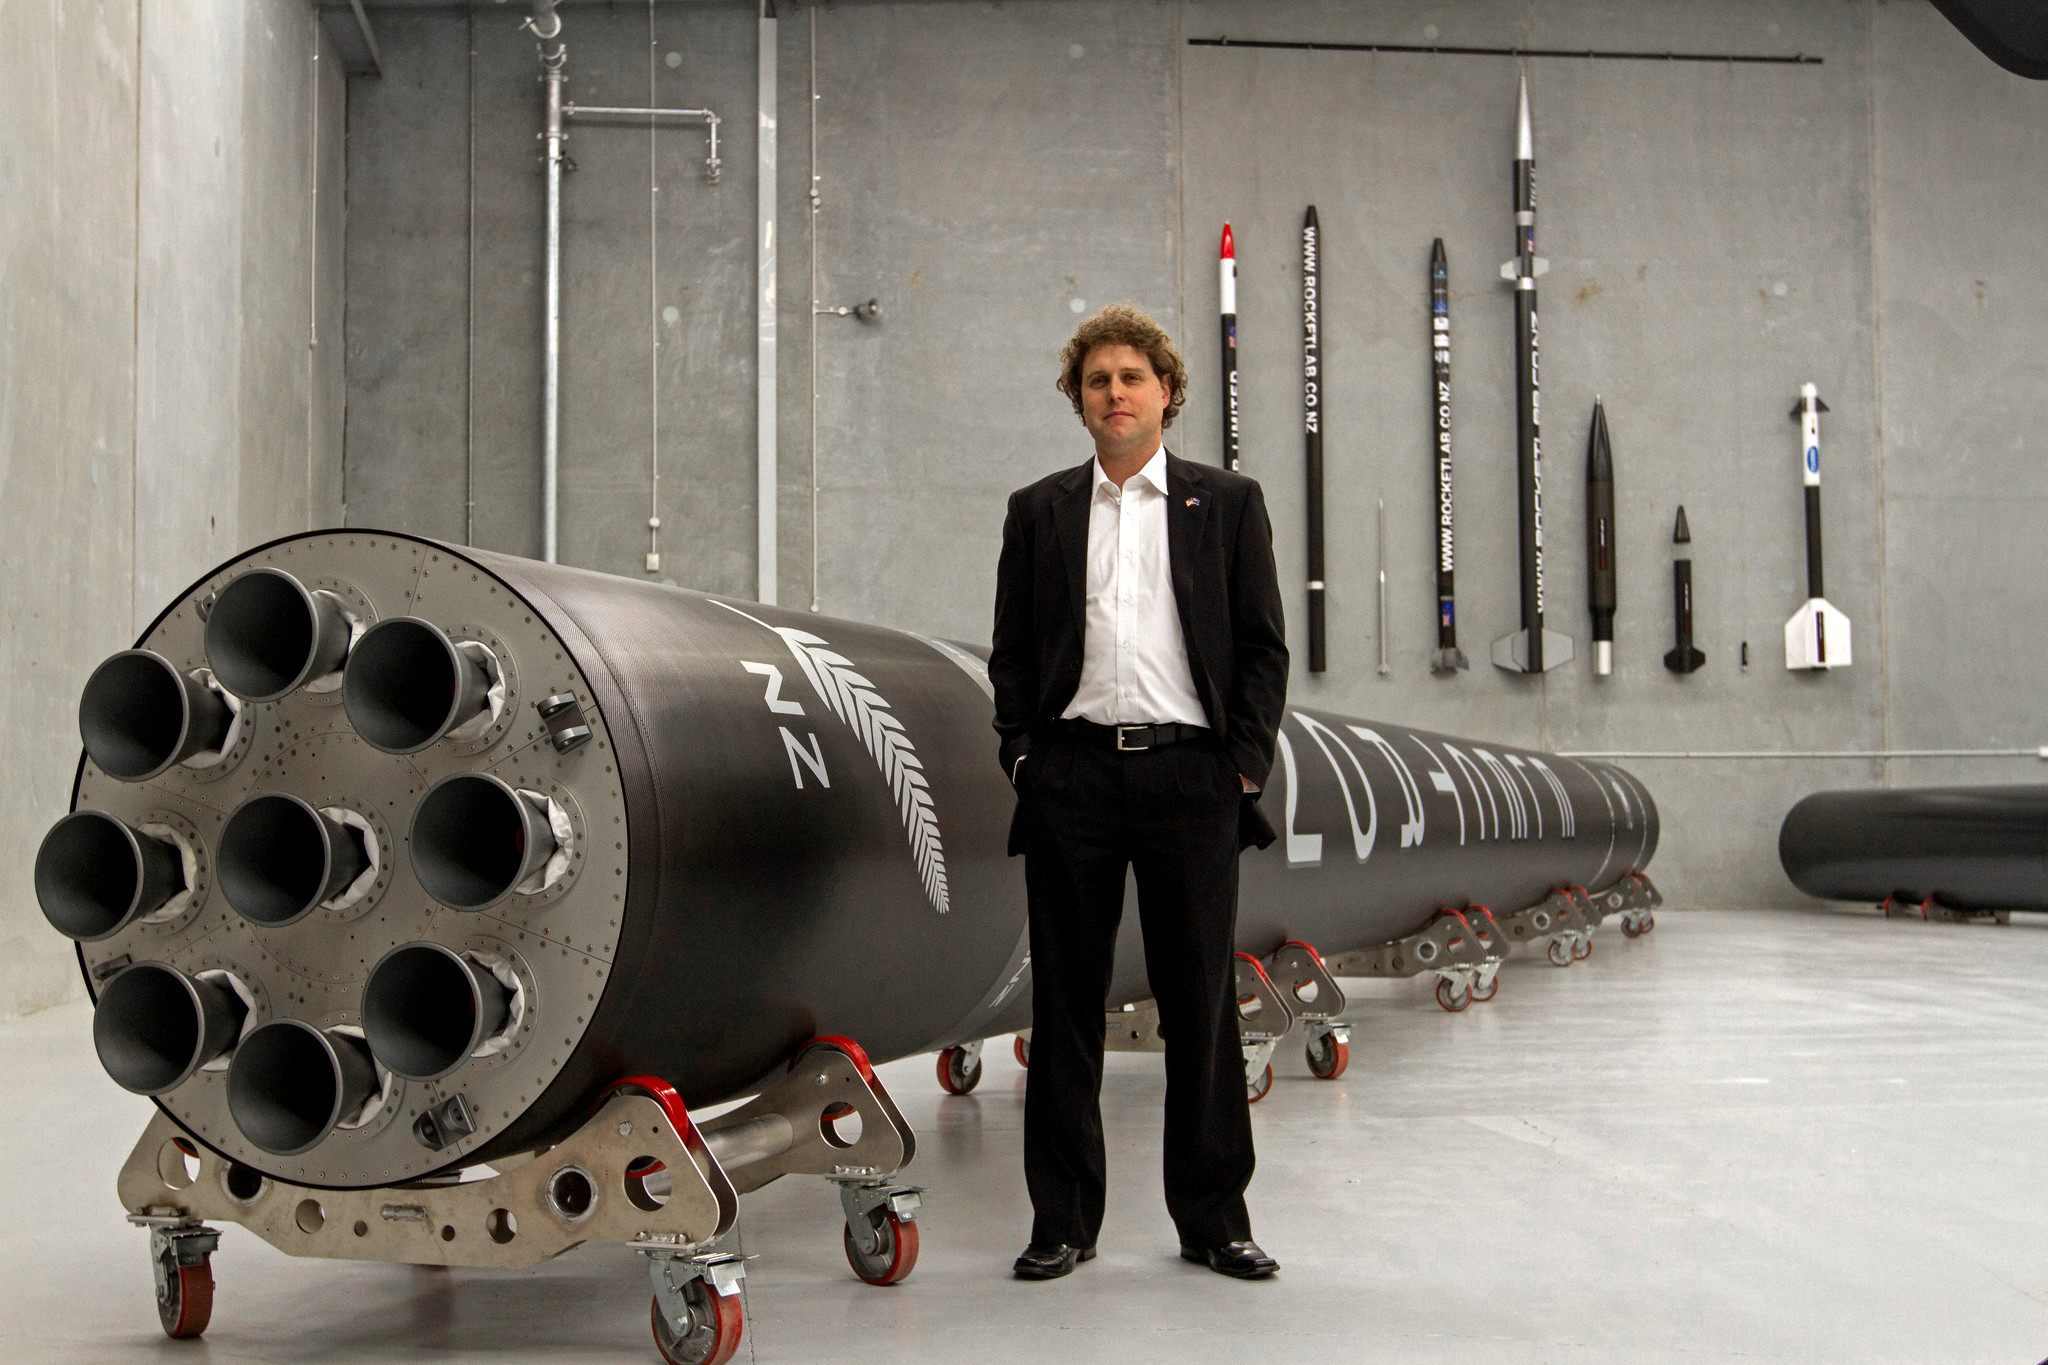 Peter Beck, Rocket Lab's chief executive, with the company's Electron rocket.